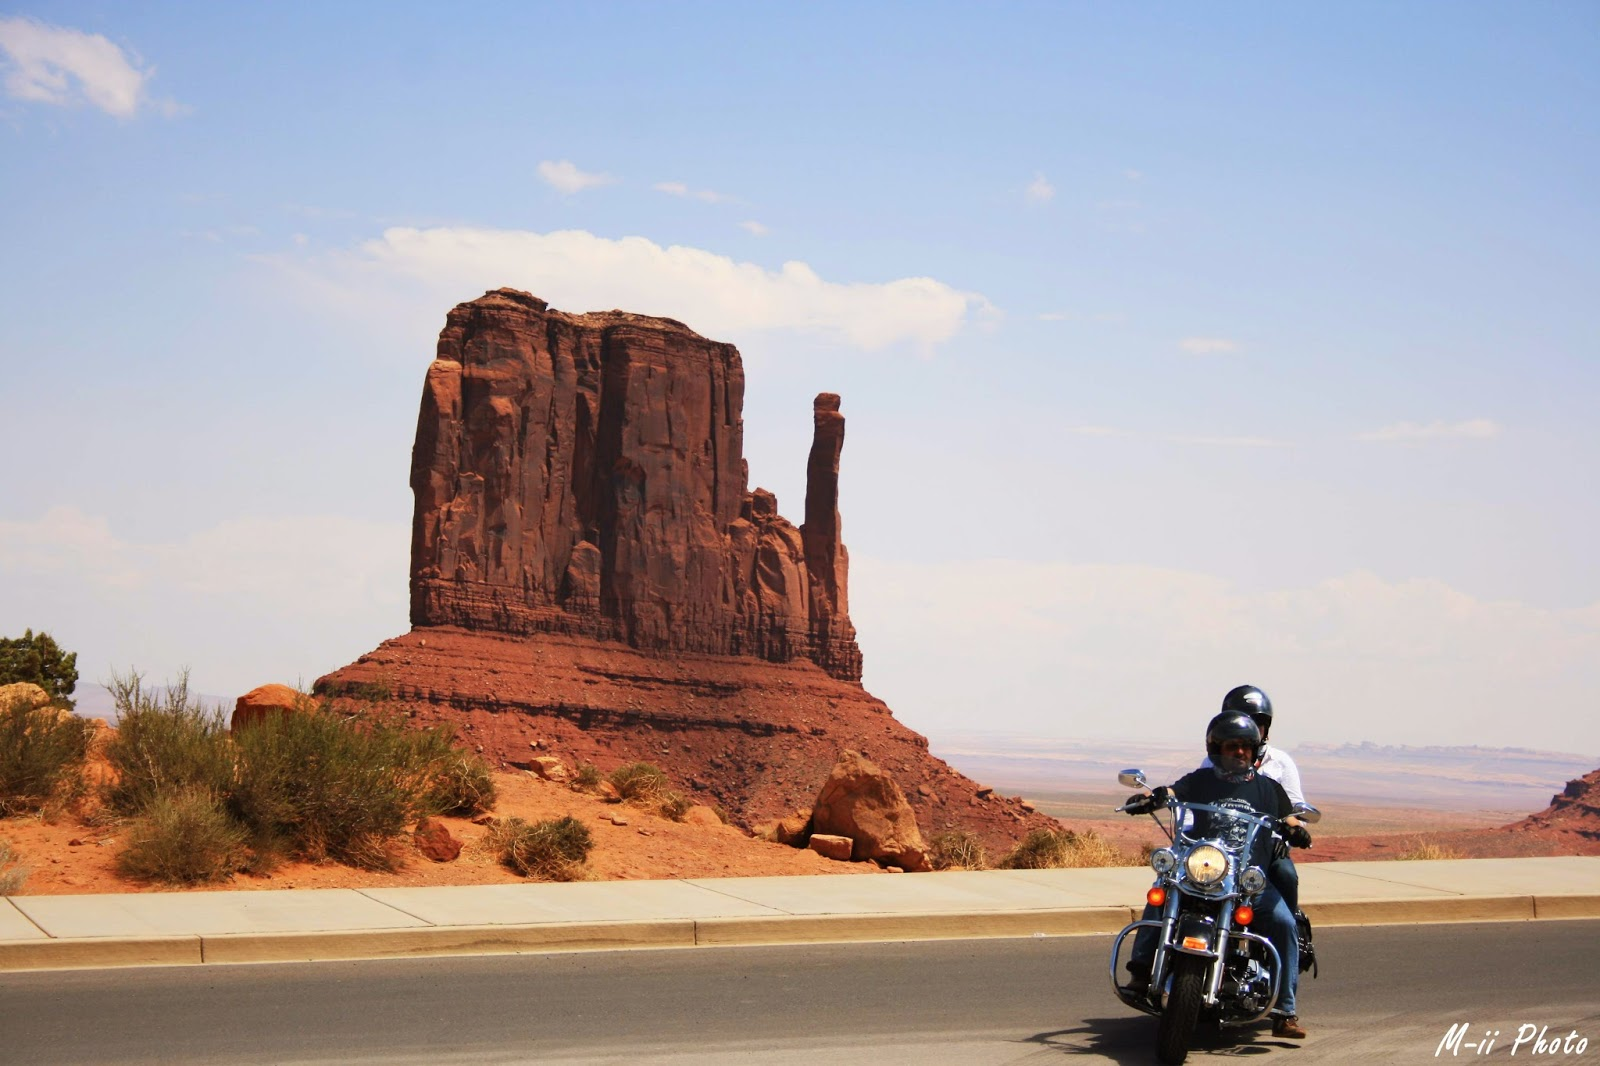 M-ii Photo: Monument Valley West Mitten Butte, la main gauche